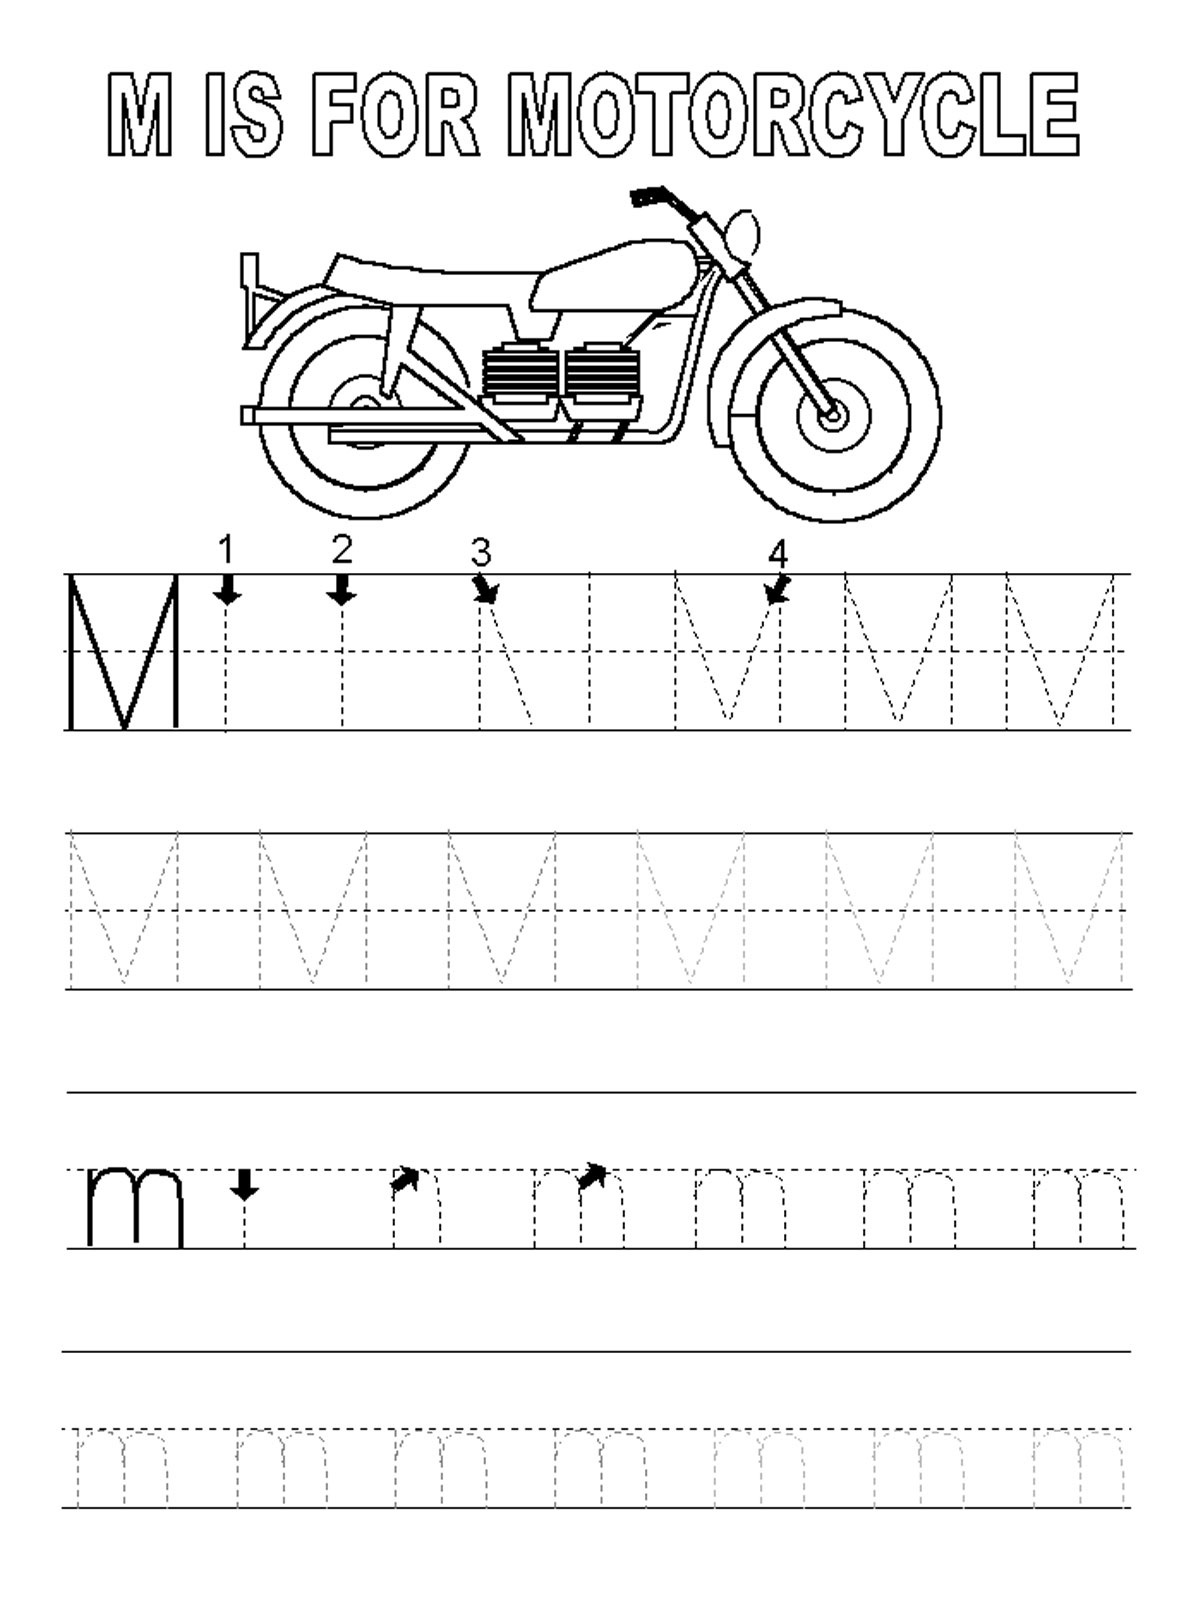 Letter r coloring pages for toddlers - Letter H Coloring Pages For Toddlers Letter M Worksheets Activity Shelter Download